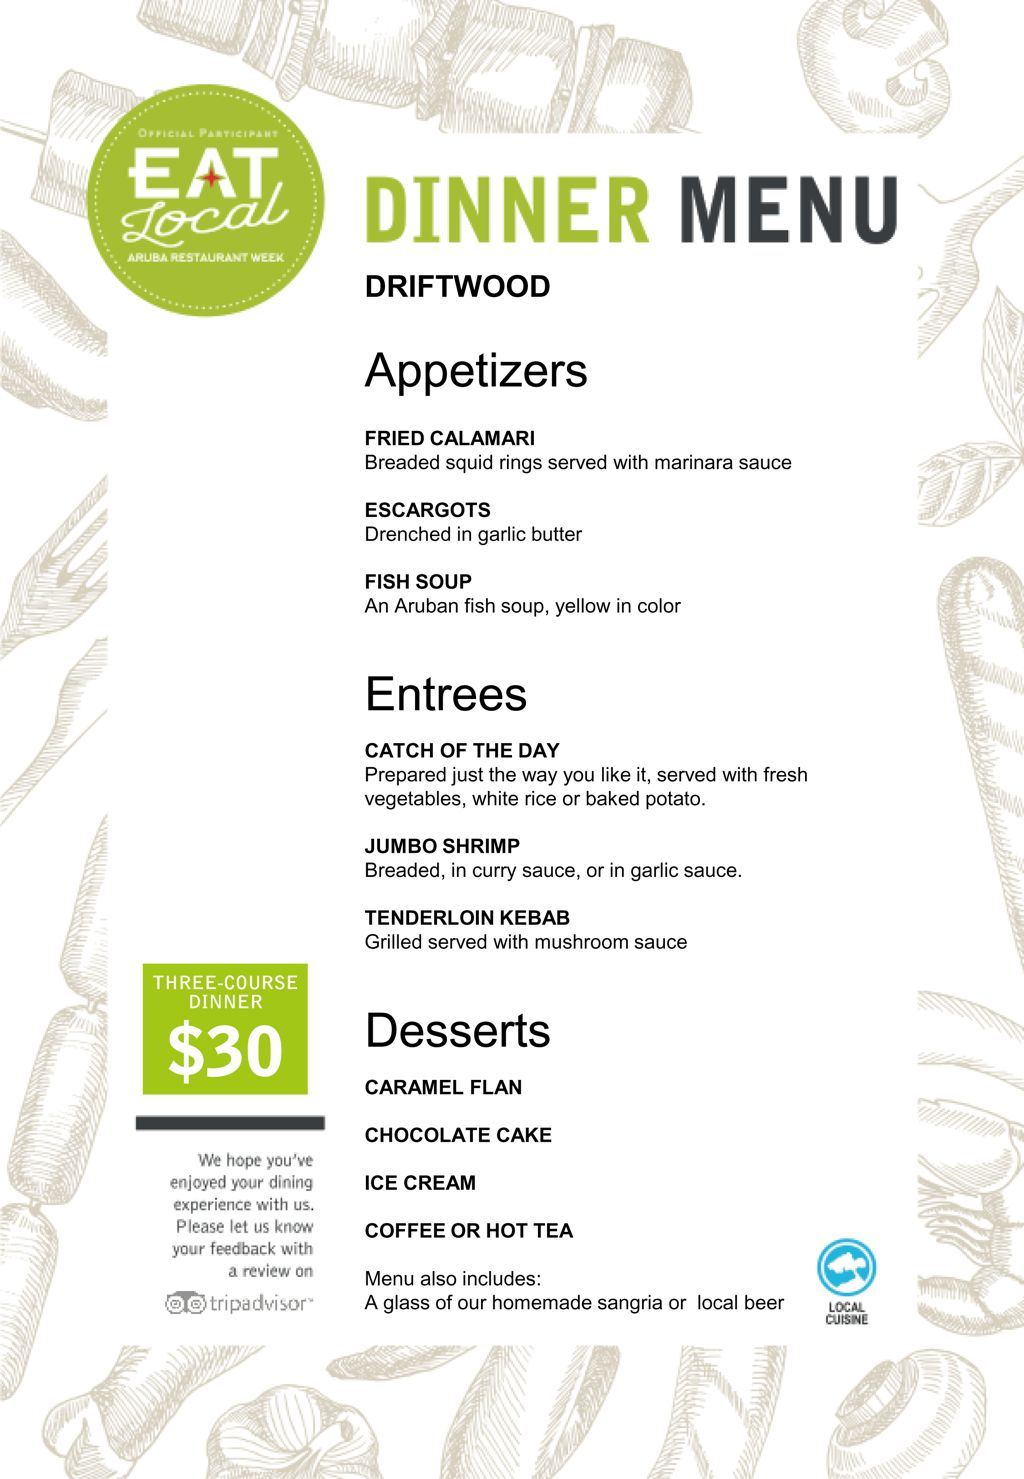 Driftwood Restaurant - Eat Local 2017